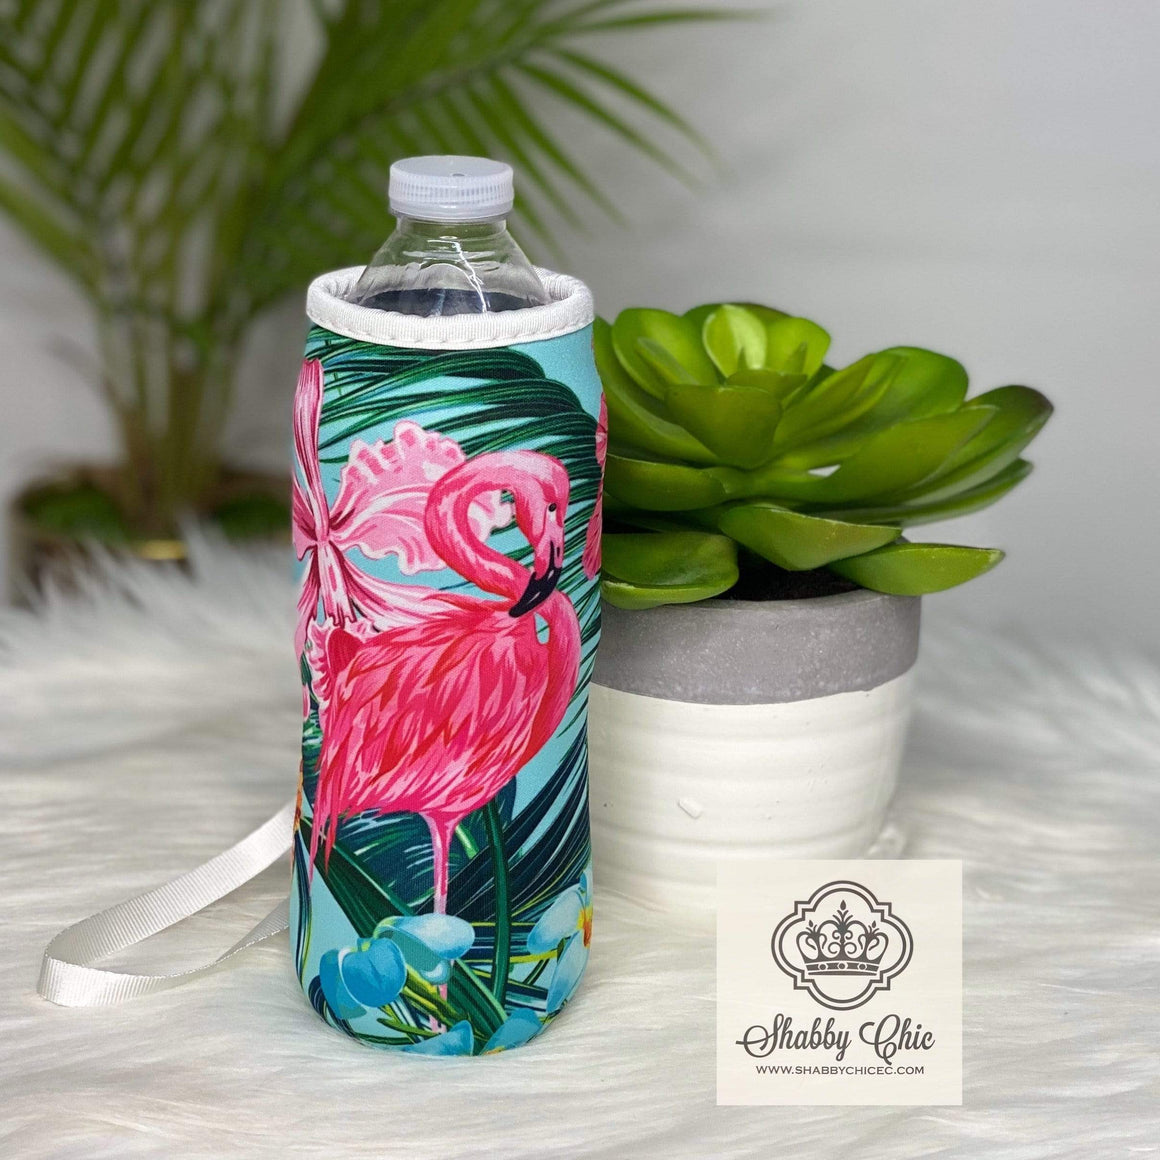 Tropical Flamingo Water Bottle Koozie Shabby Chic Boutique and Tanning Salon